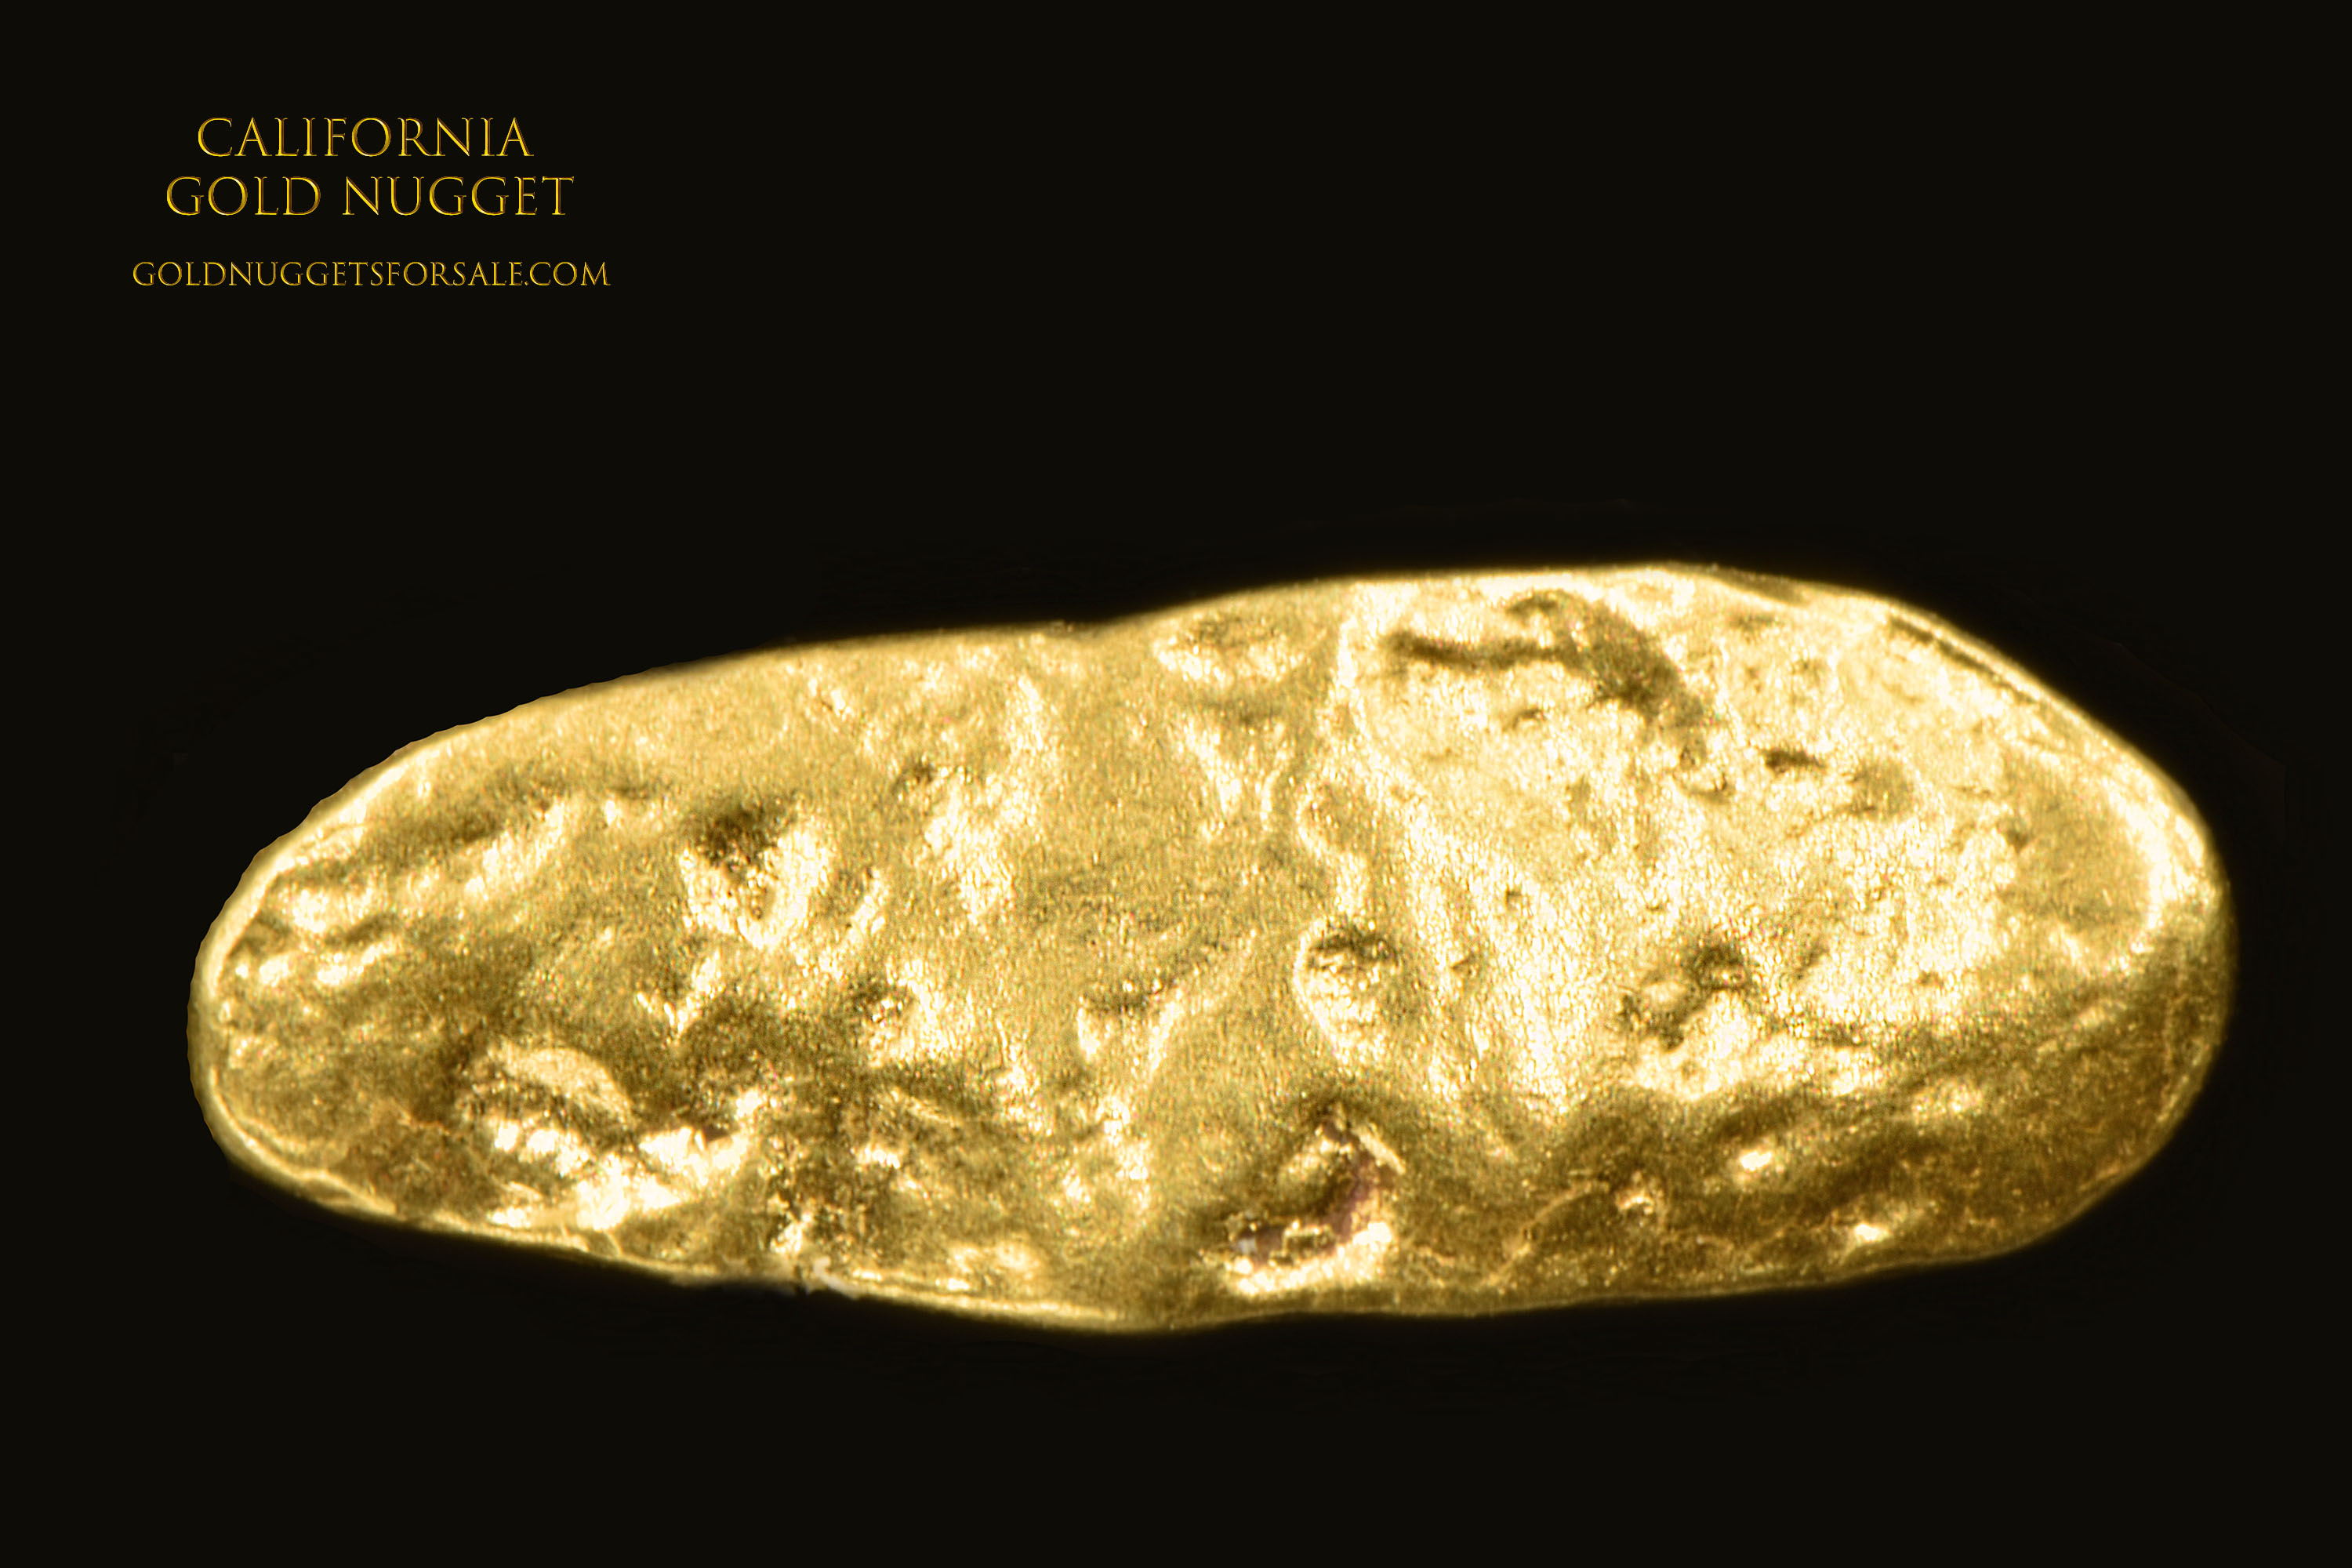 Smooth Jewelry Grade Gold Nugget From California